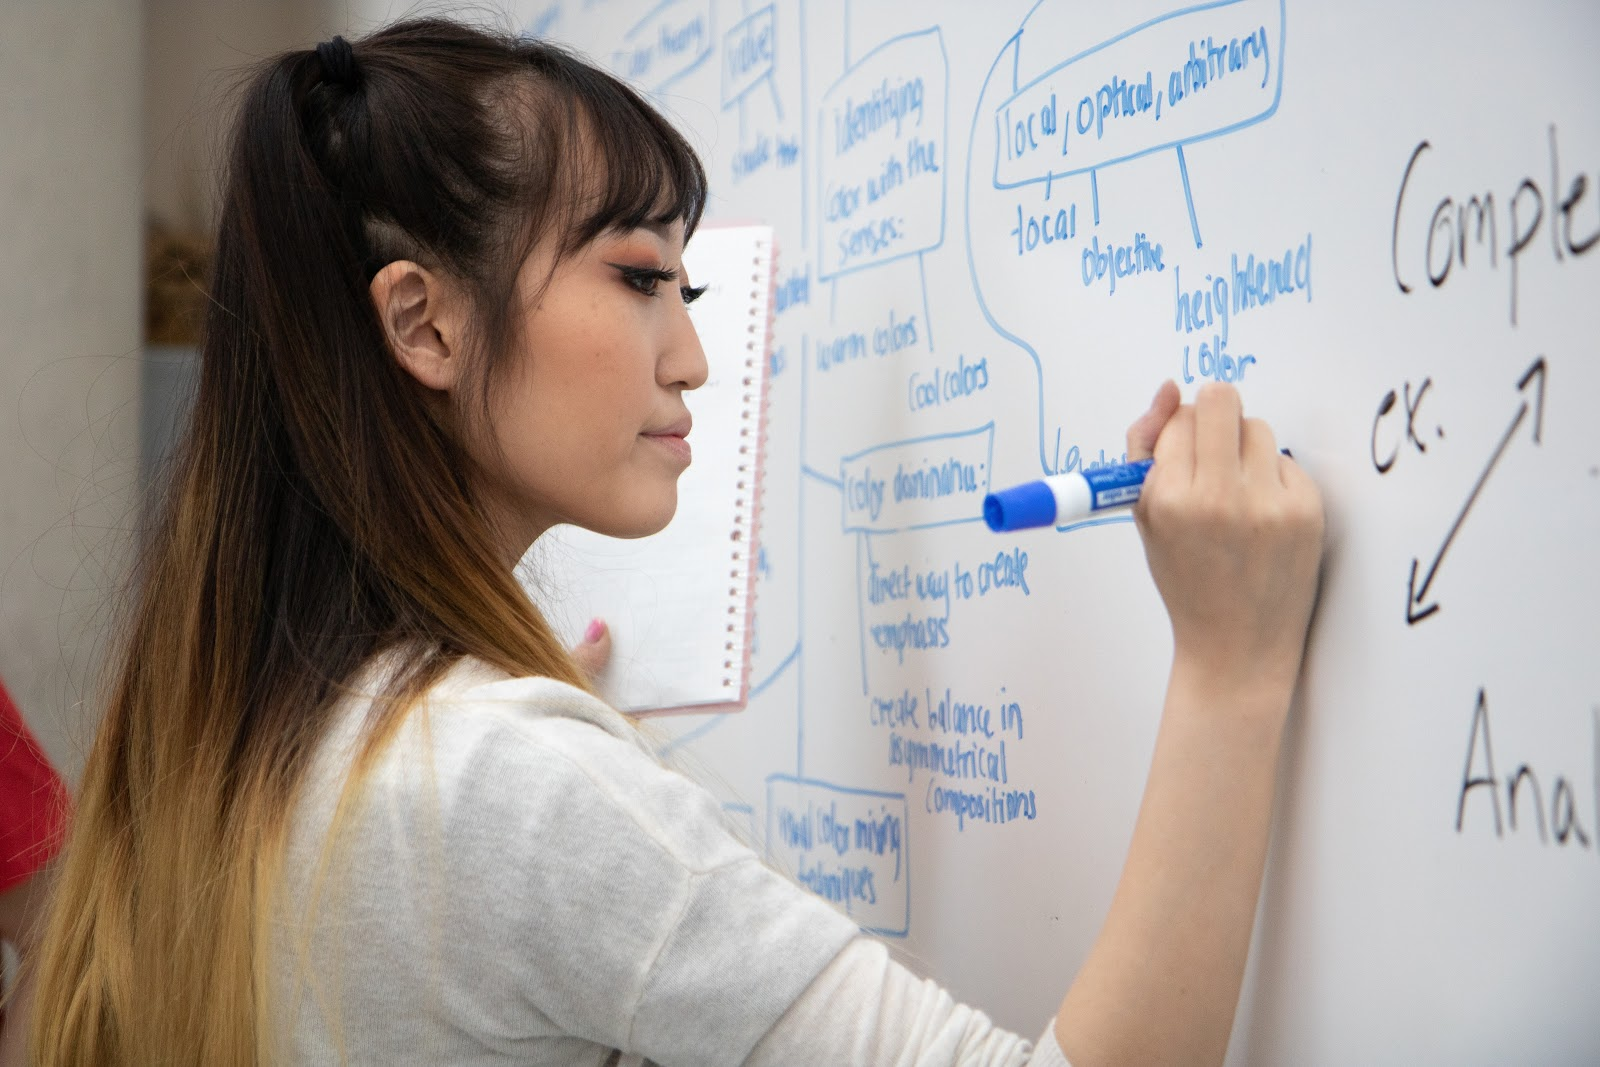 A student writes on the whiteboard in her <mark><mark><mark>classroom</mark></mark></mark> with a blue sharpie marker in her right hand and a notebook in her left.